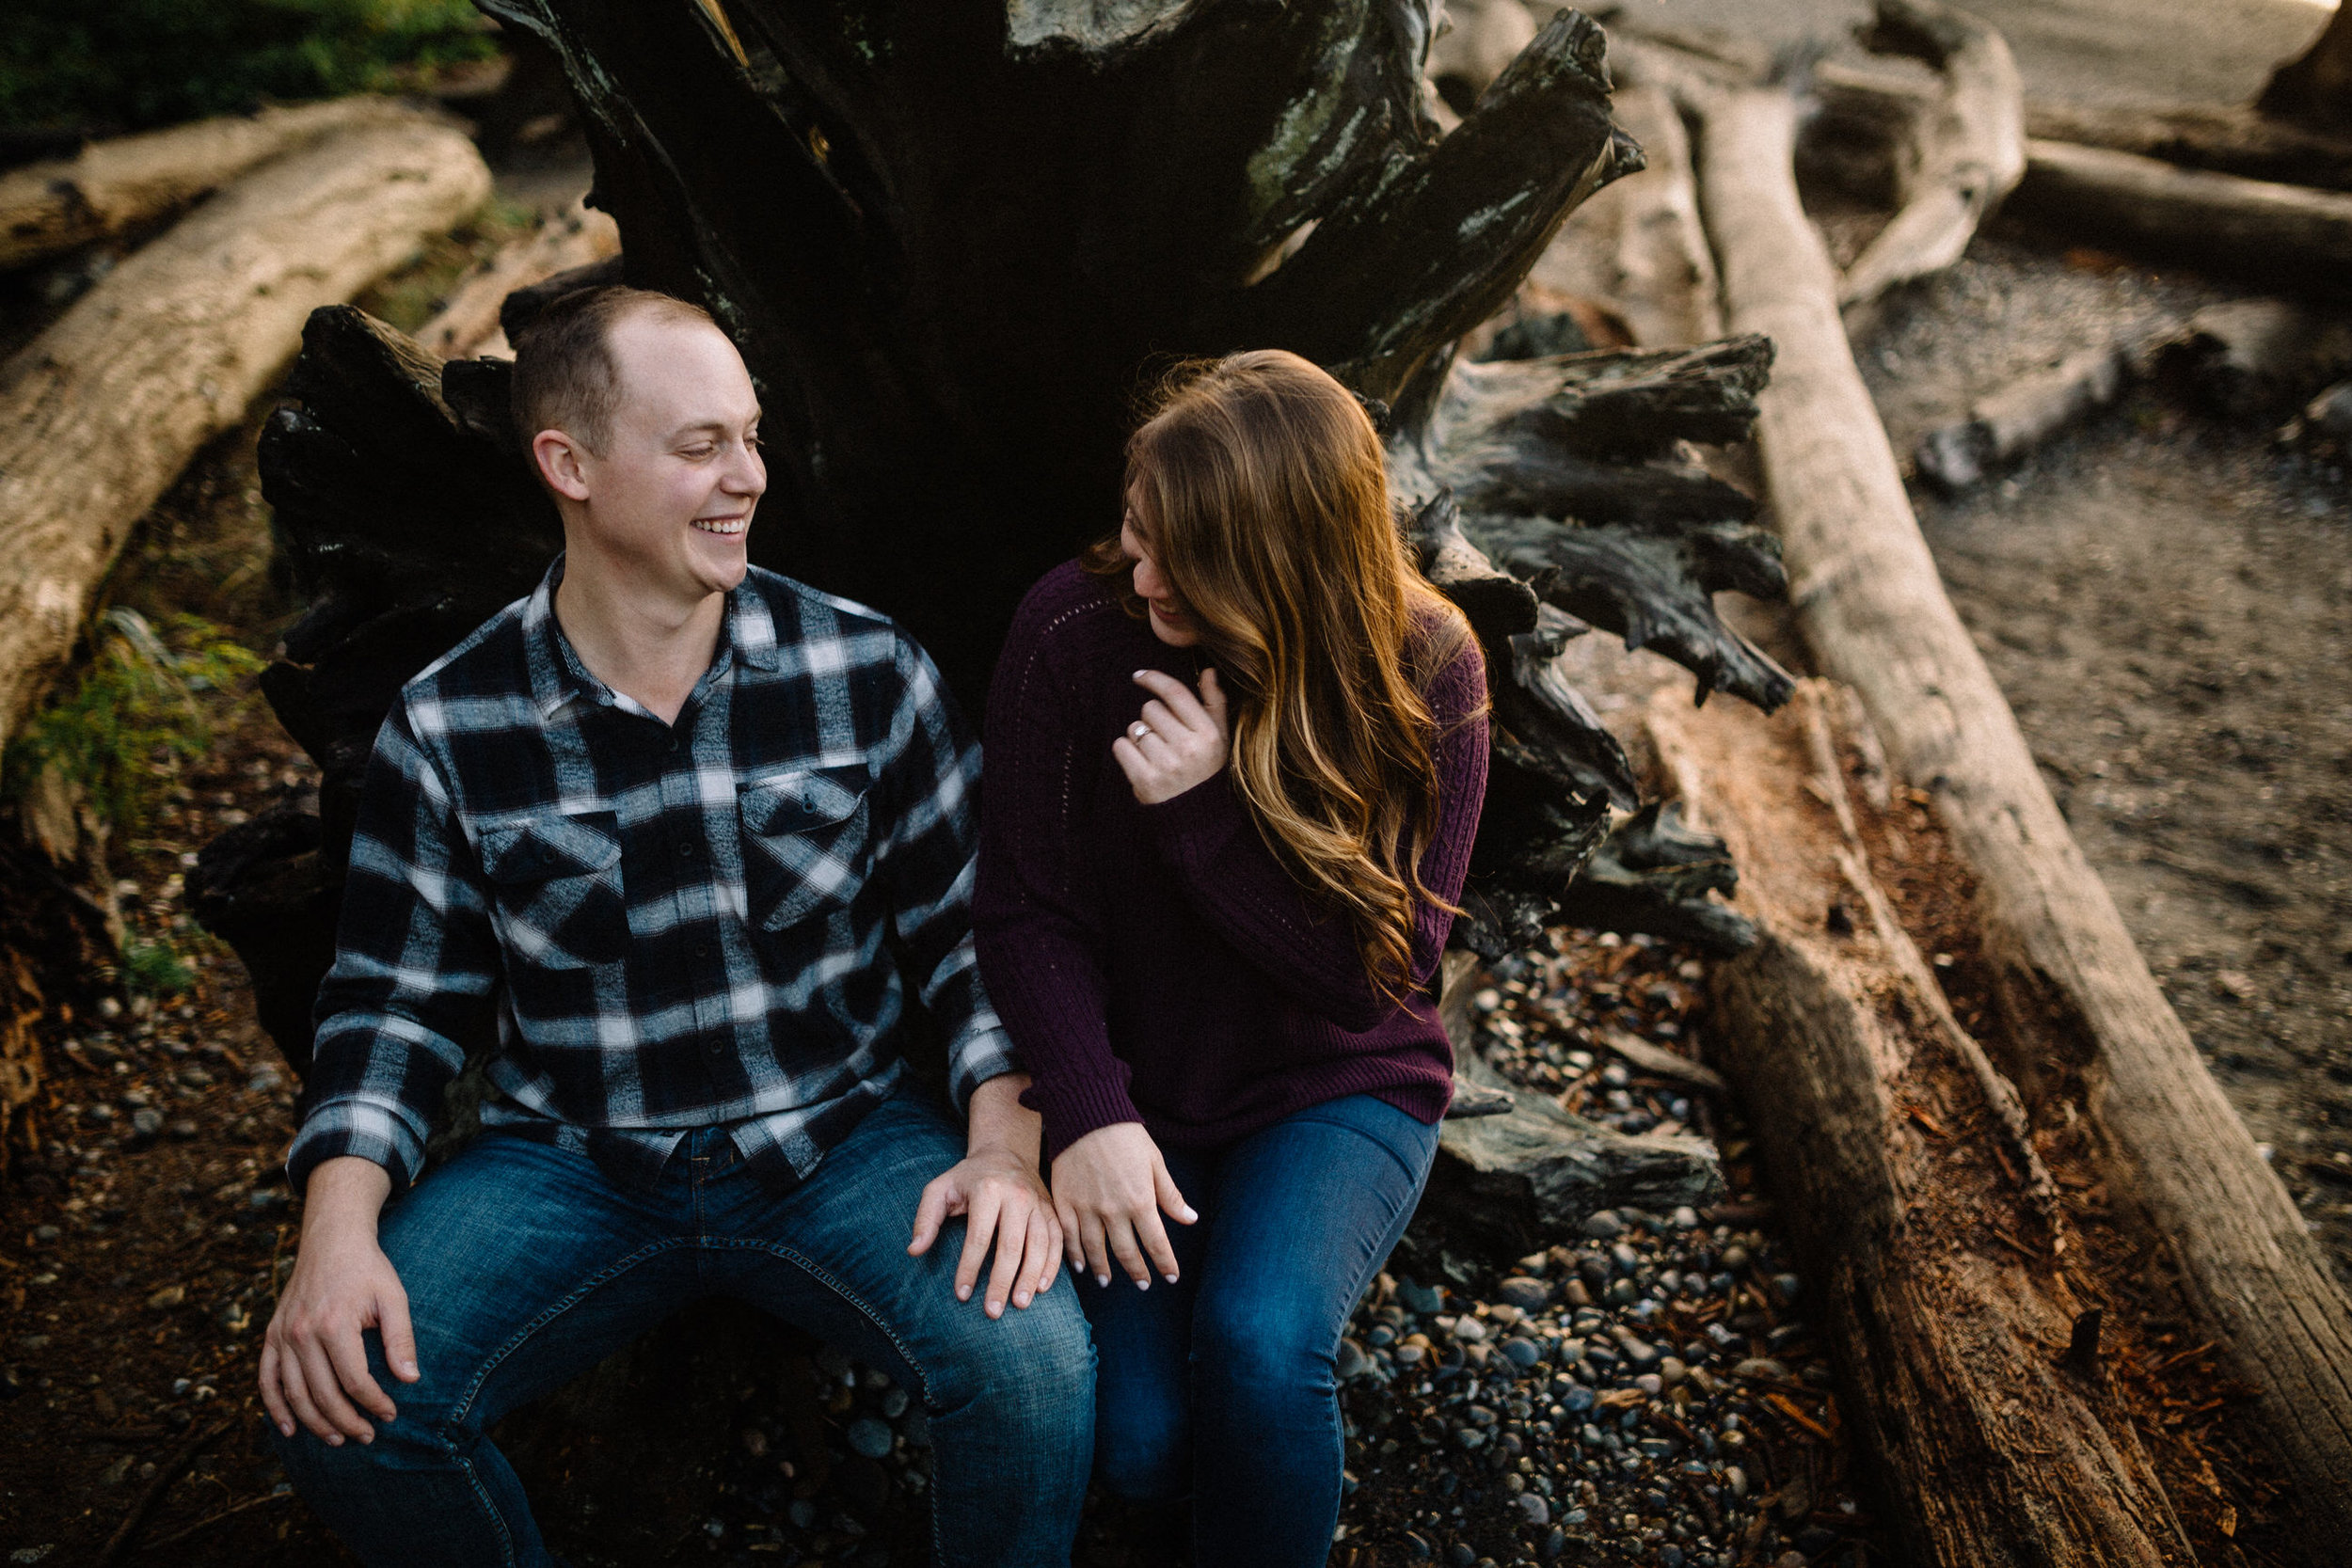 Deception Pass engagement photography Seattle washington0025.JPG